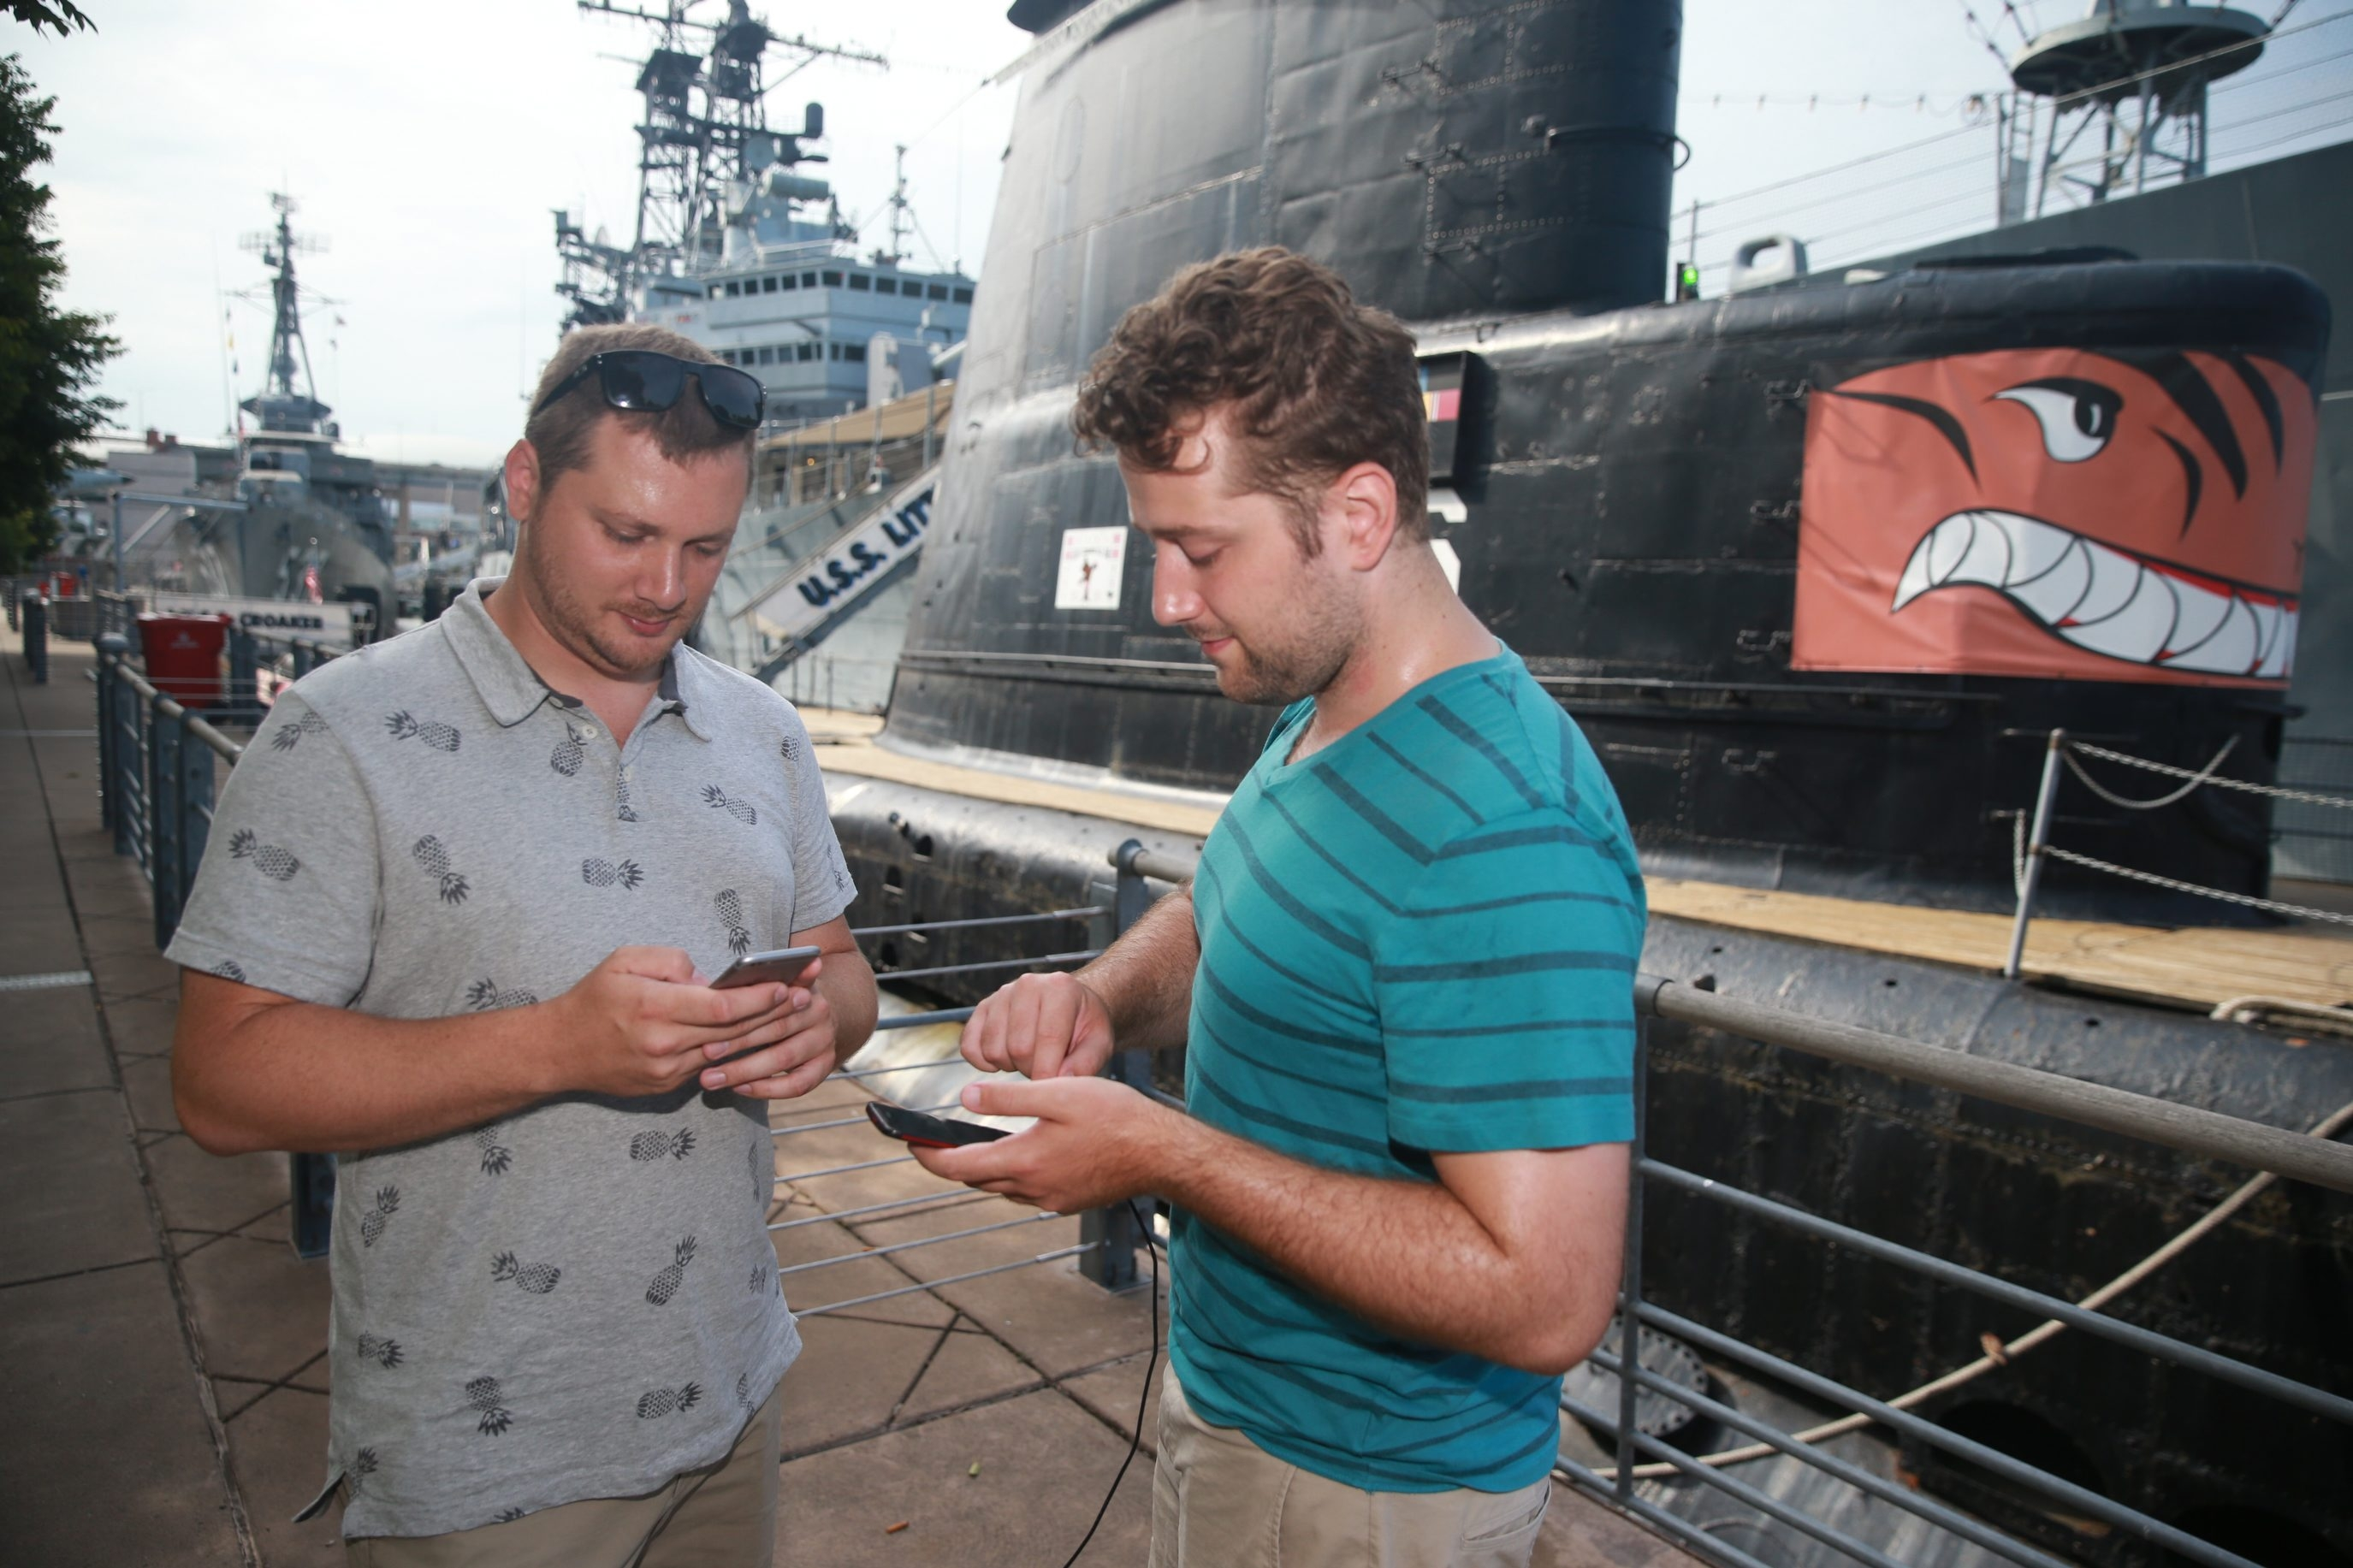 Vincent Whitney, right, of Buffalo, and Patrick Lambert, of Williamsville, POKEMON GO gamers walk and catch pokeman at  Buffalo and Erie County Naval & Military Park, in Buffalo, N.Y.,on Tuesday July 12, 2016. (John Hickey/Buffalo News)